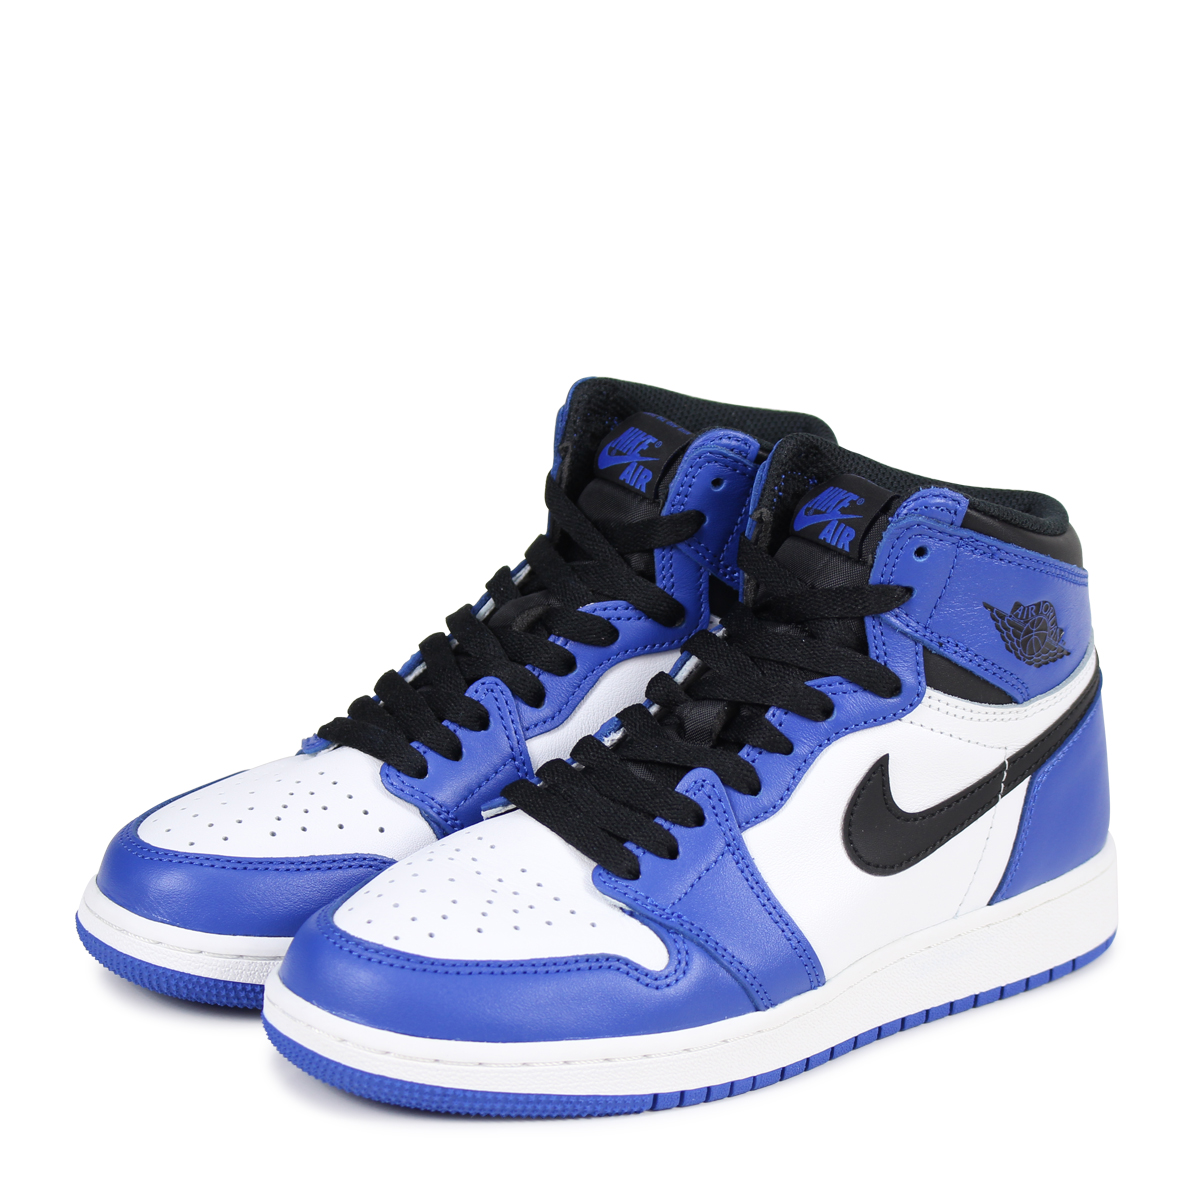 evitar Cenar Bungalow  ALLSPORTS: NIKE AIR JORDAN 1 RETRO HIGH OG BG GAME ROYAL Nike Air ...